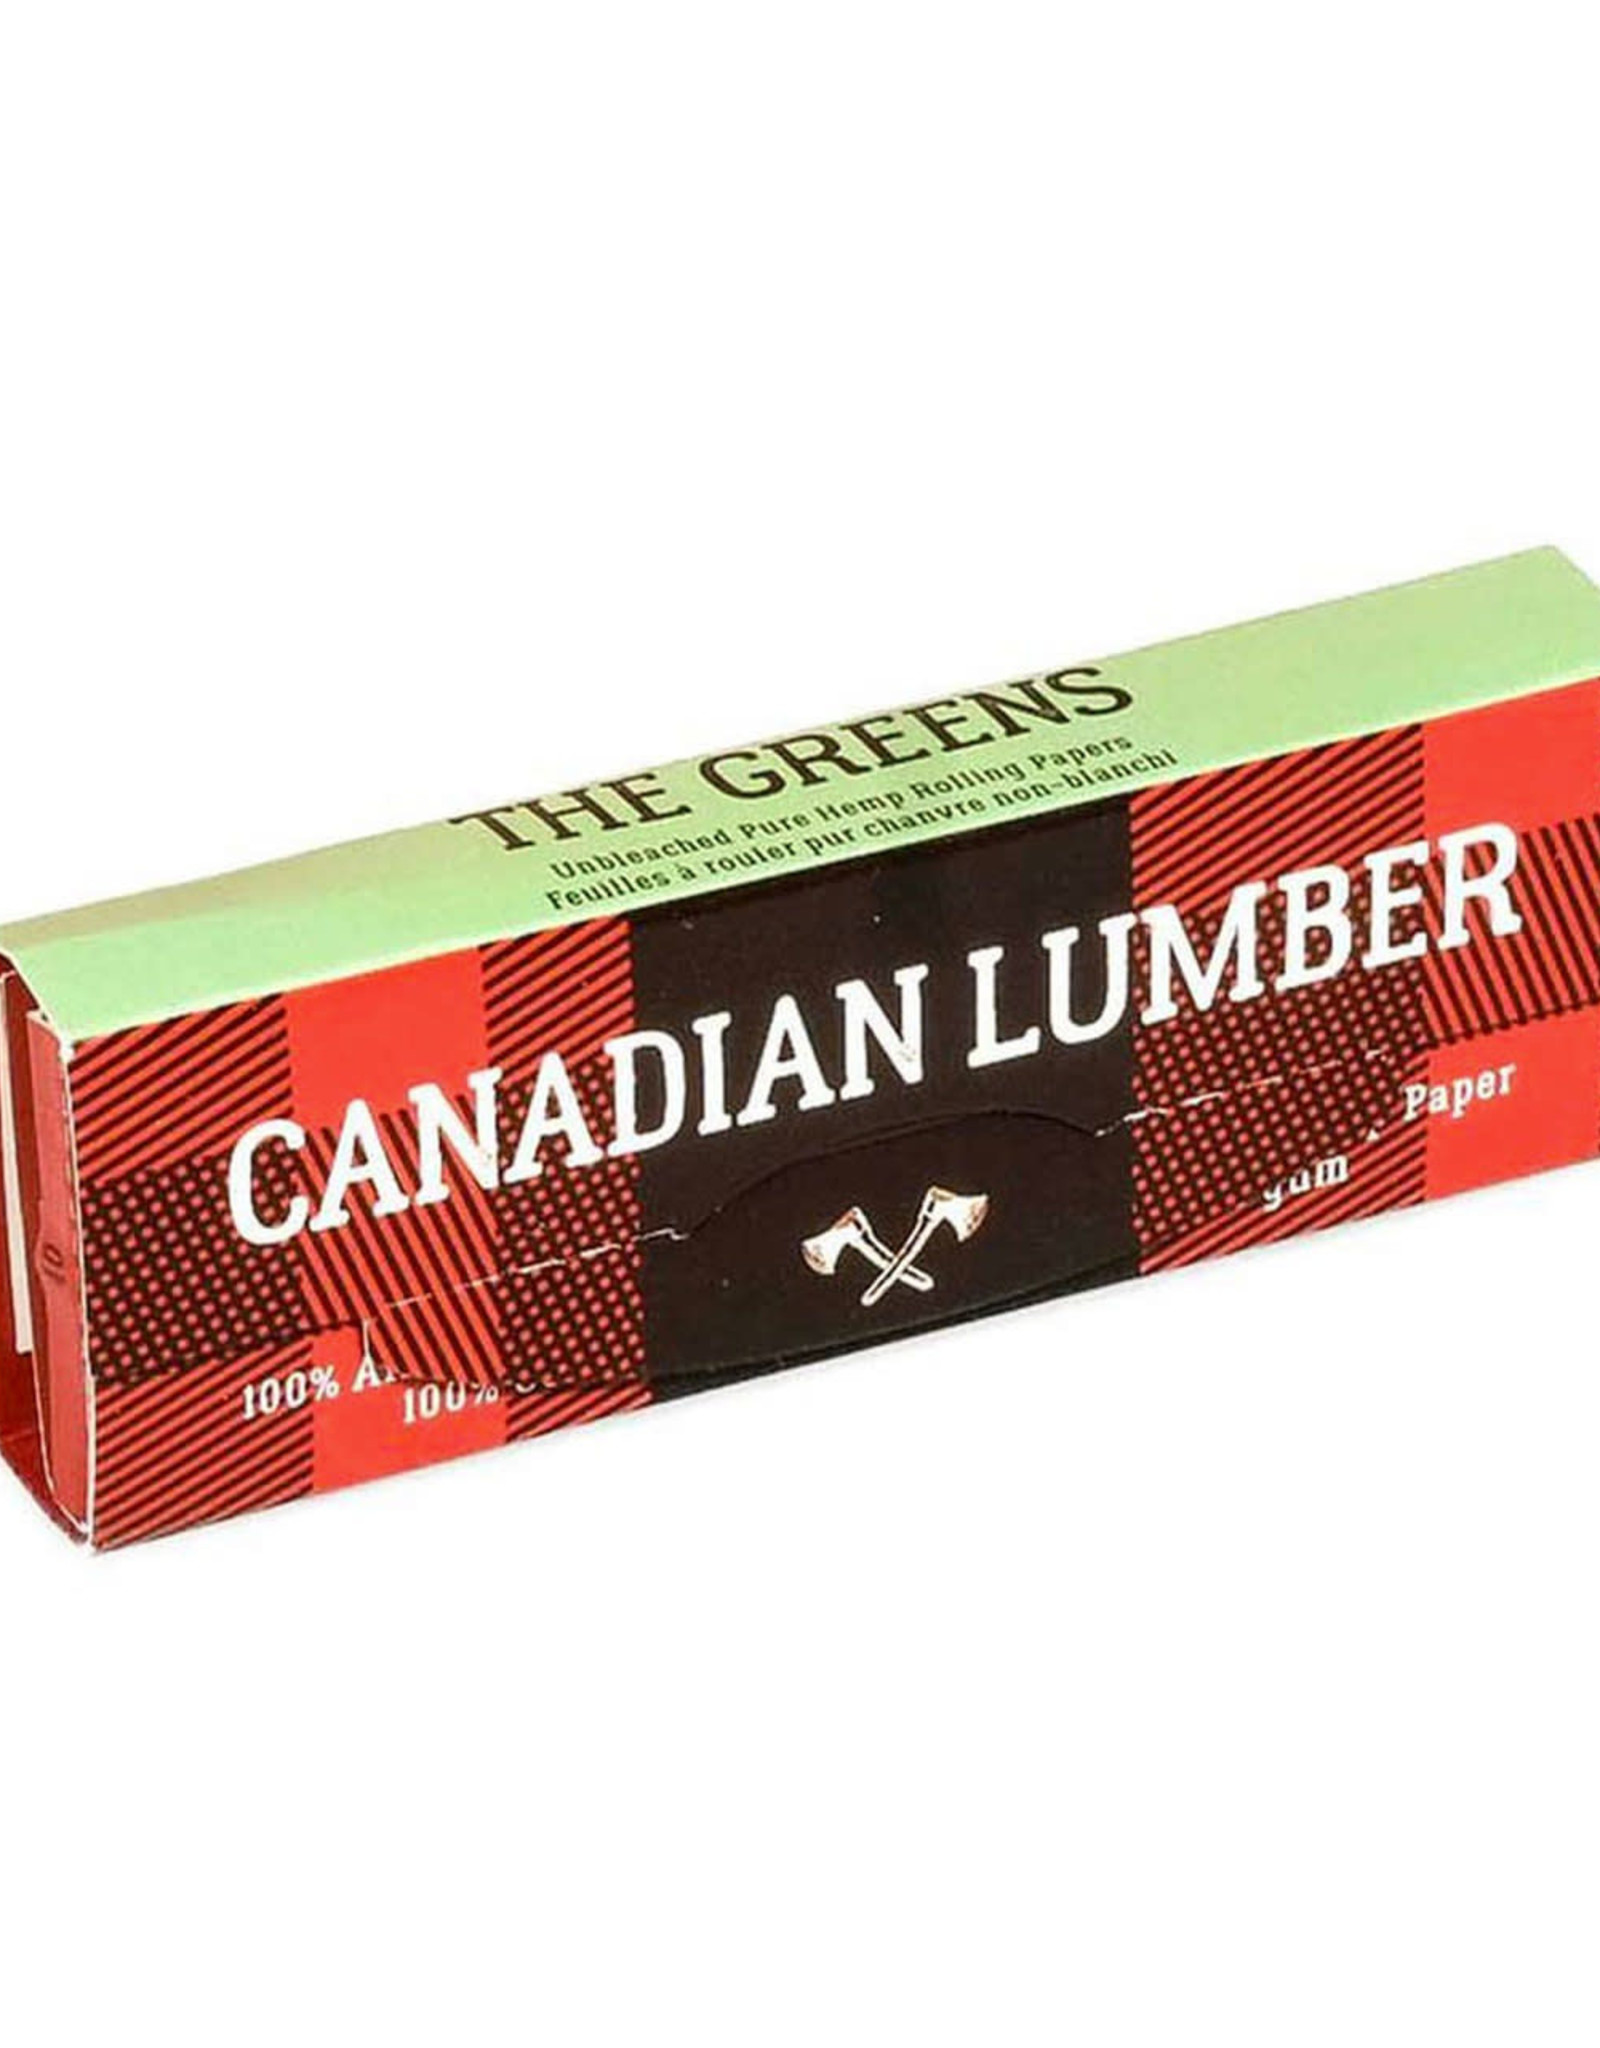 Canadian Lumber 1.25 w/tips - The Greens